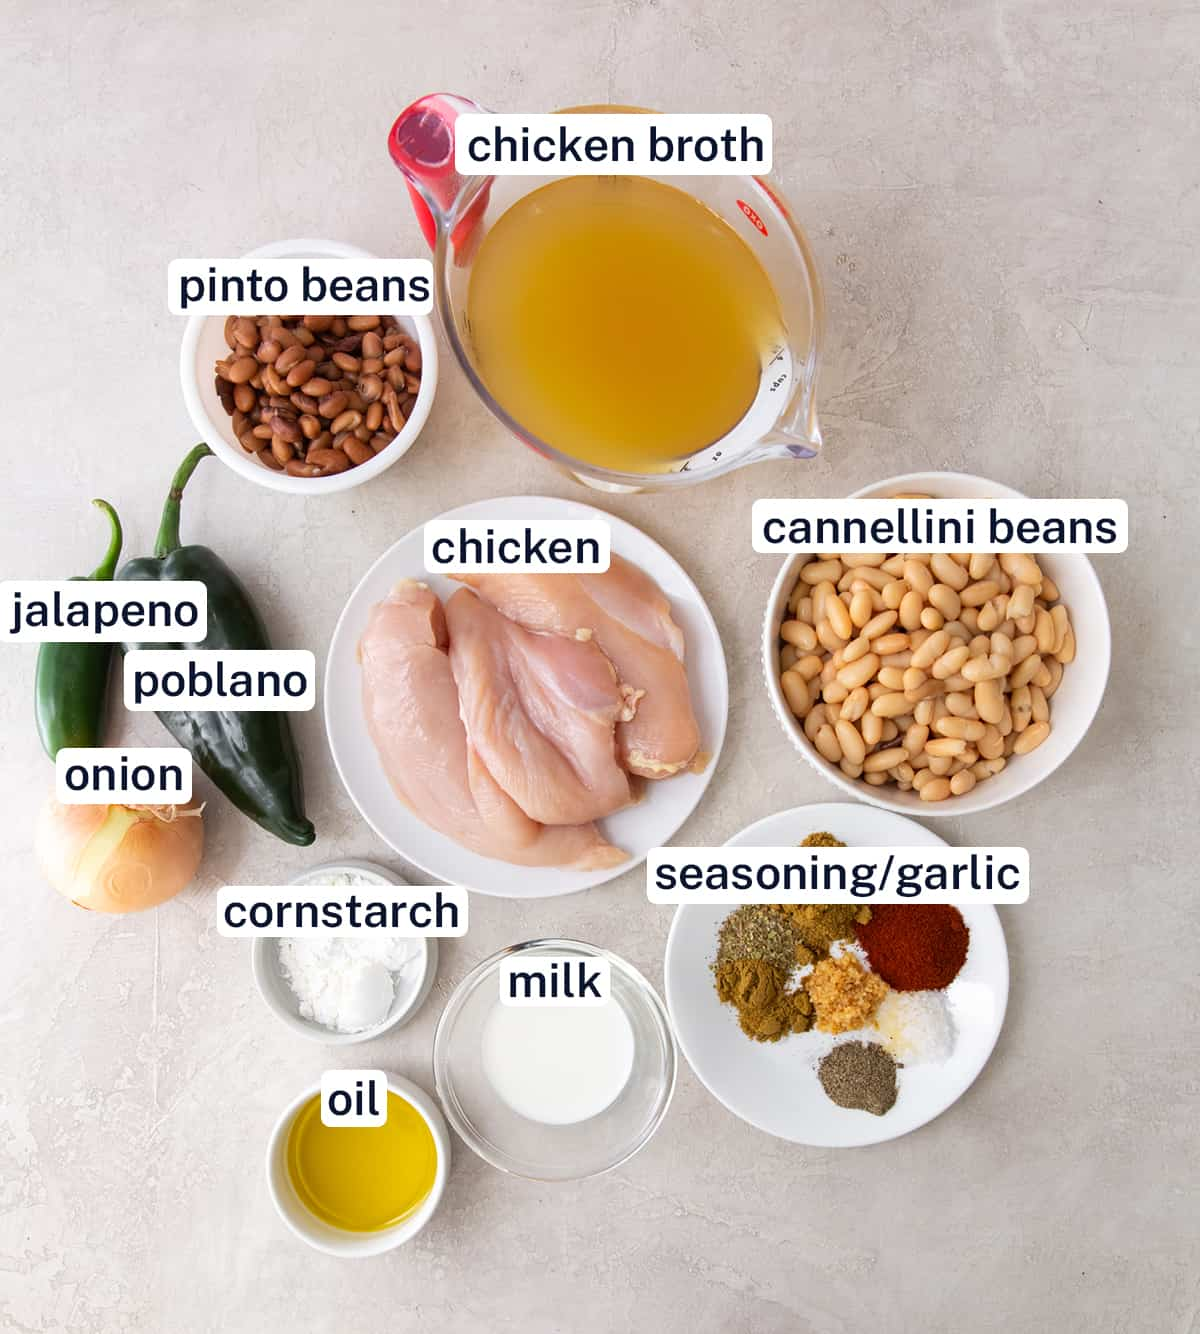 The ingredients for White Chicken Chili with text overlay.